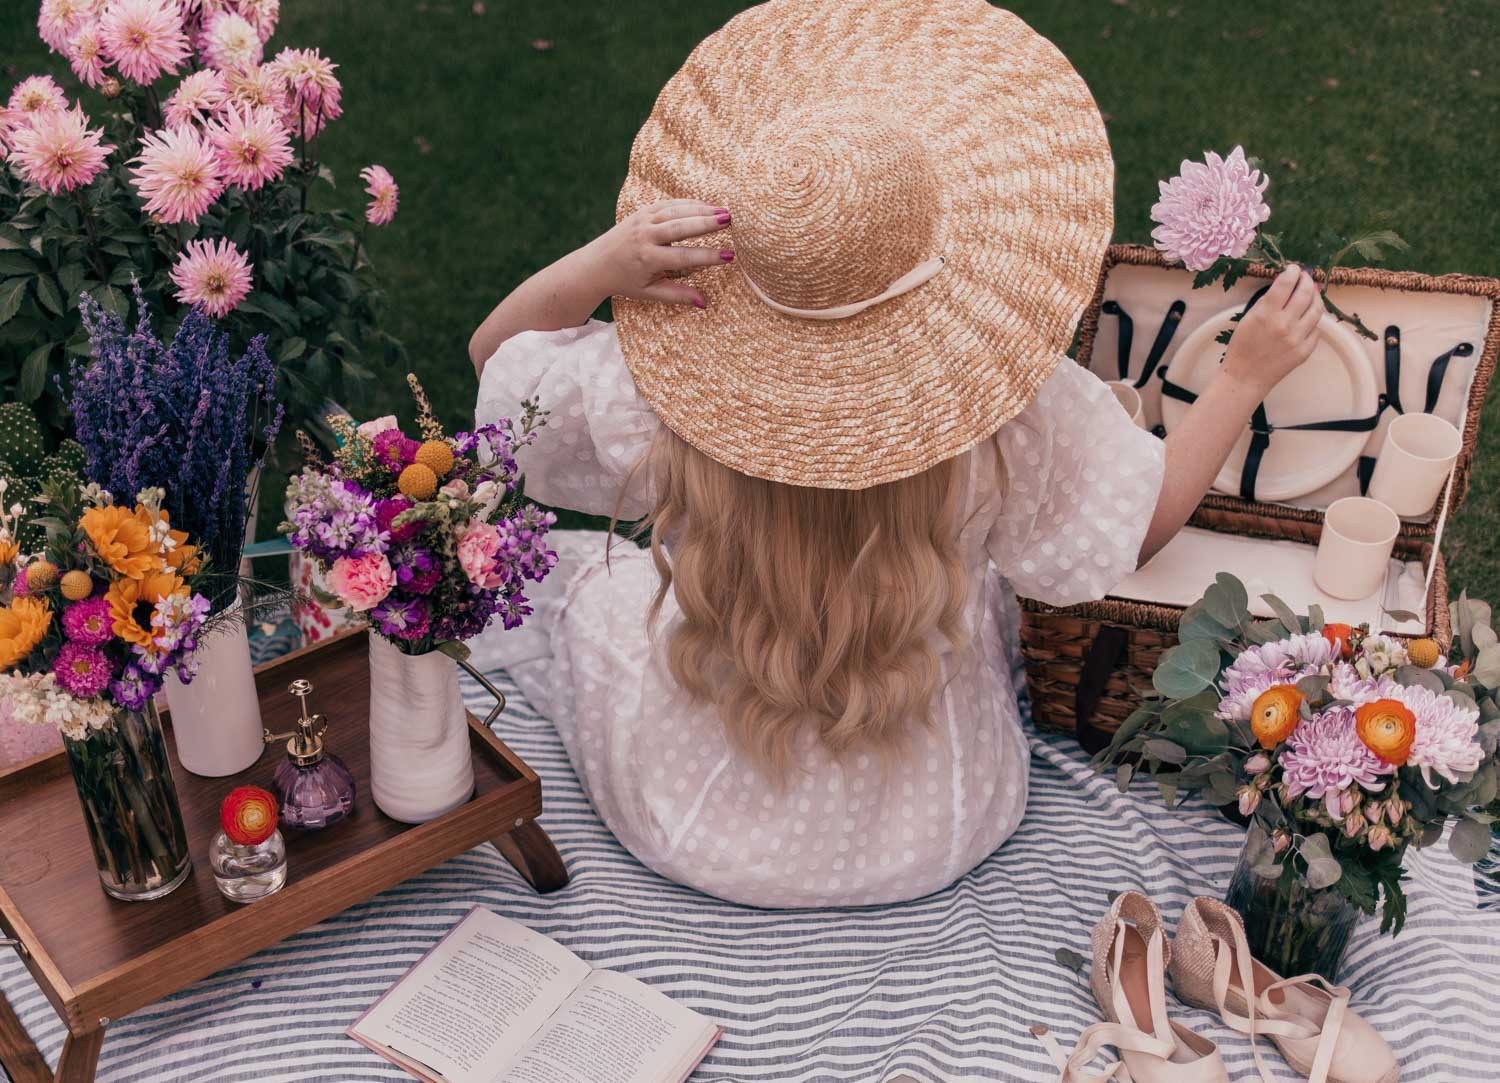 Feminine Fashion Blogger Elizabeth Hugen of Lizzie in Lace shares her June 2021 Month in Review and her feminine picnic outfit including a white puff sleeve dress and Lack of Color Scalloped Hat